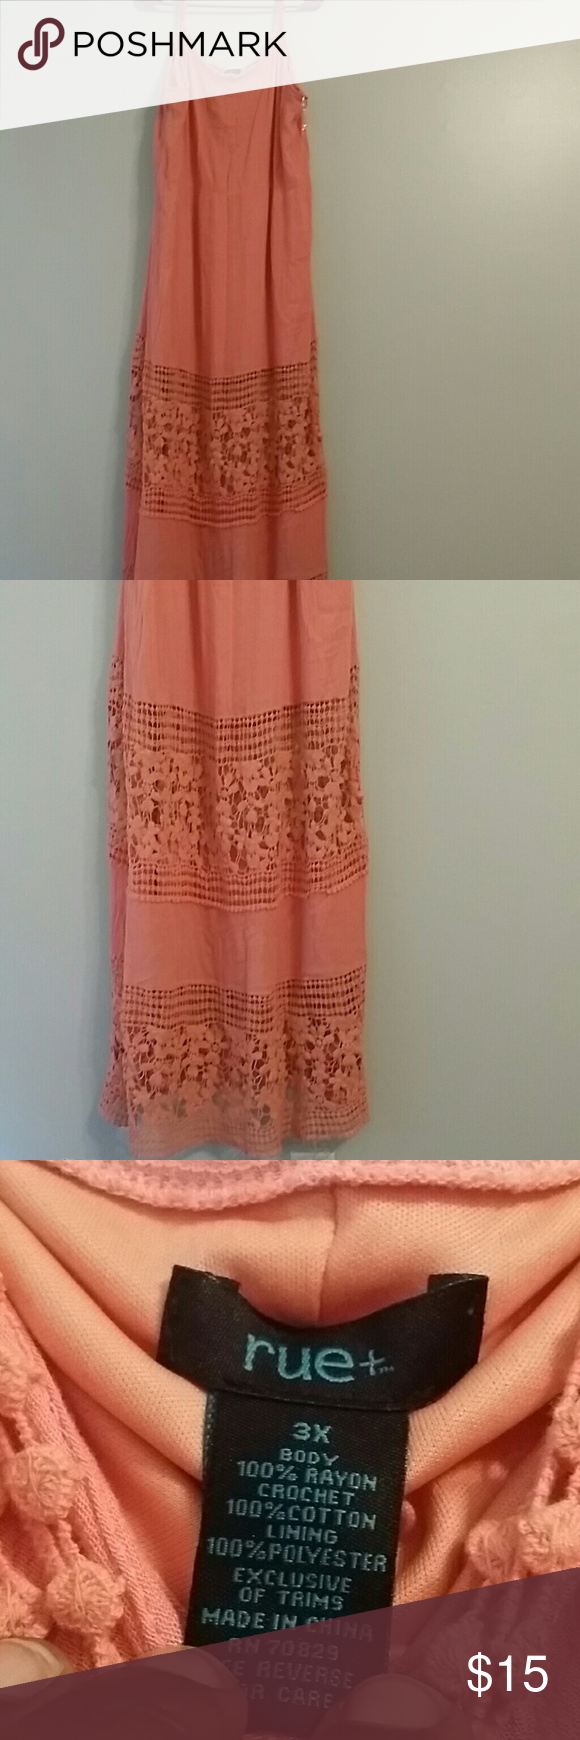 plus size alert! rue 21 maxi 3x beautiful summer color. lace is